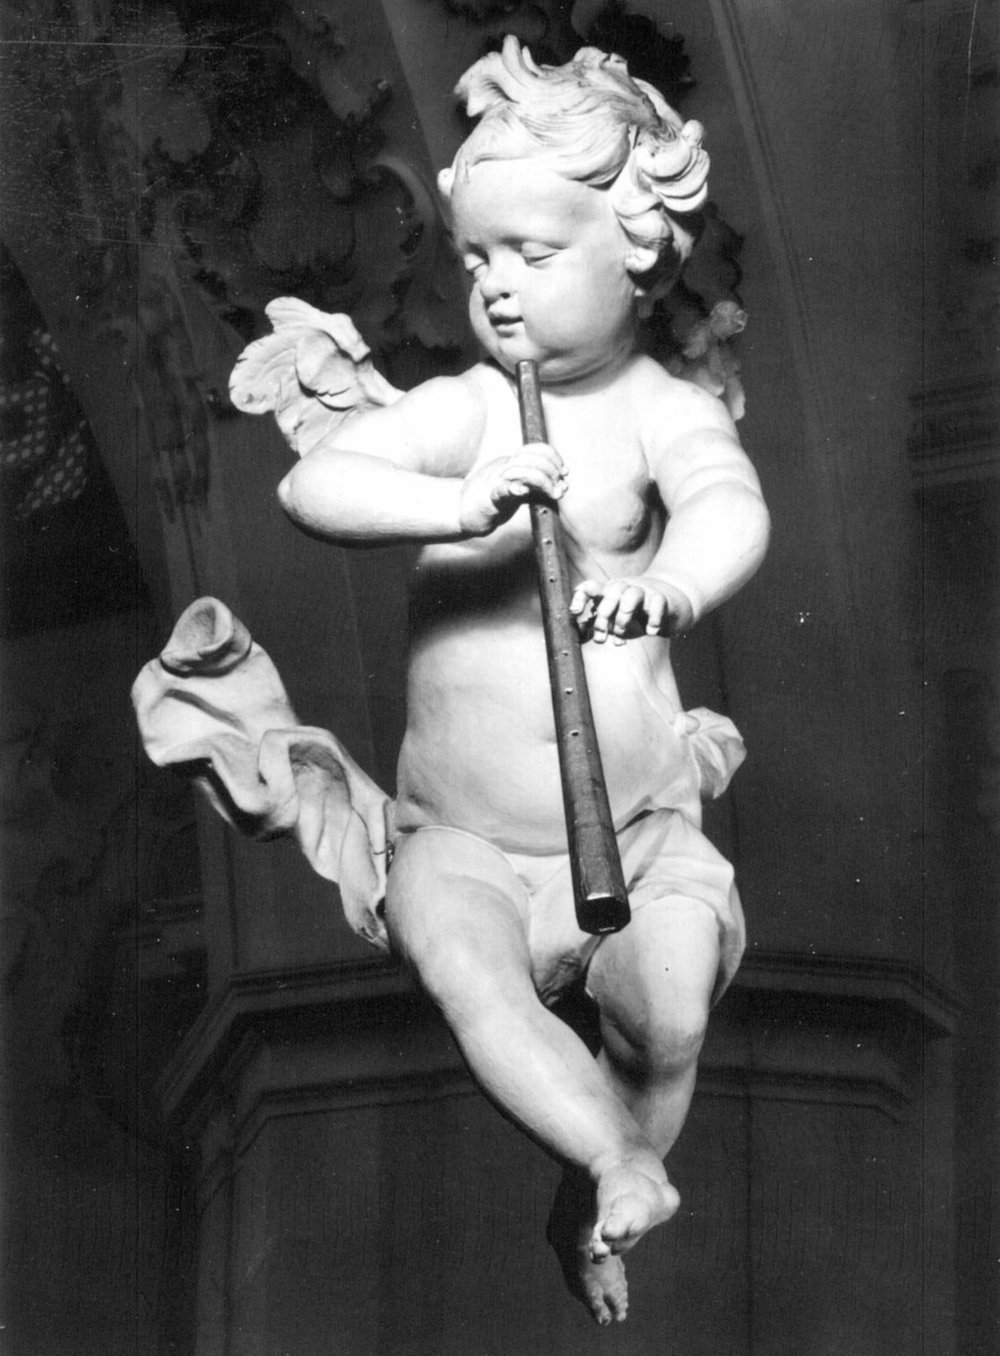 Putto cornettist by F. X. Schmädl (1744) in Stiftskirche Rottenbuch.